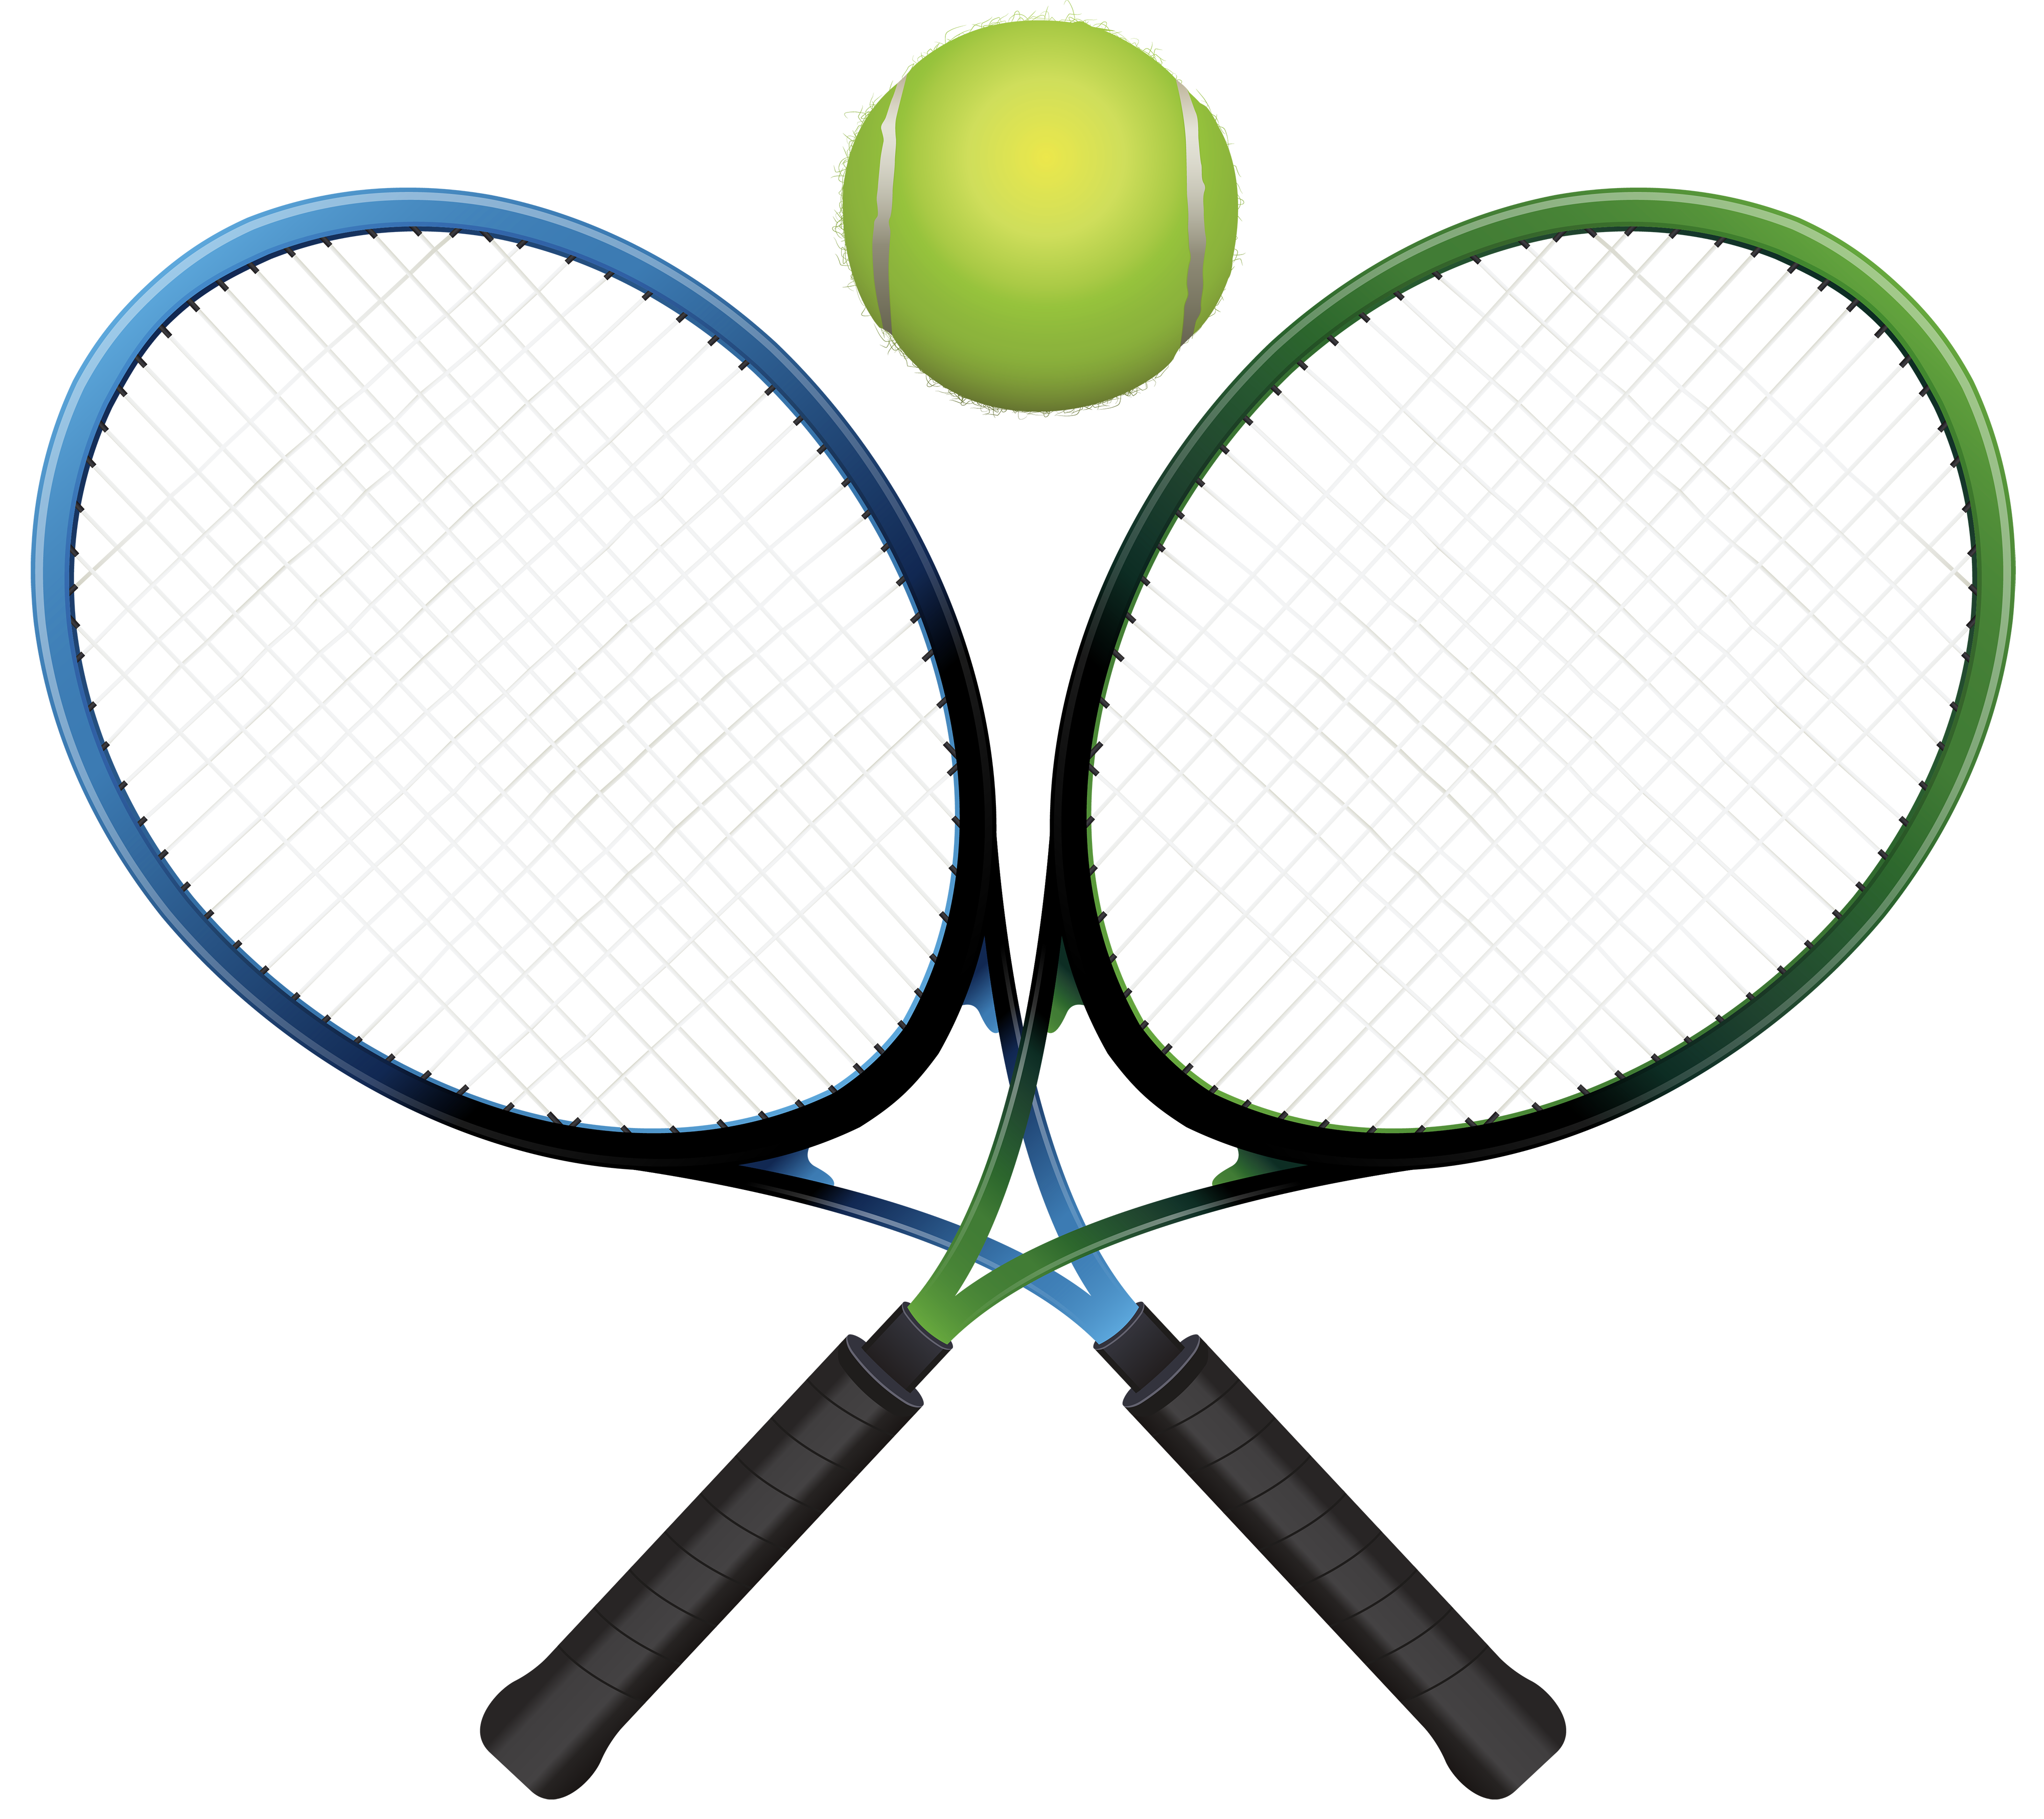 4000x3559 Tennis Ball Clipart Tennis Racket